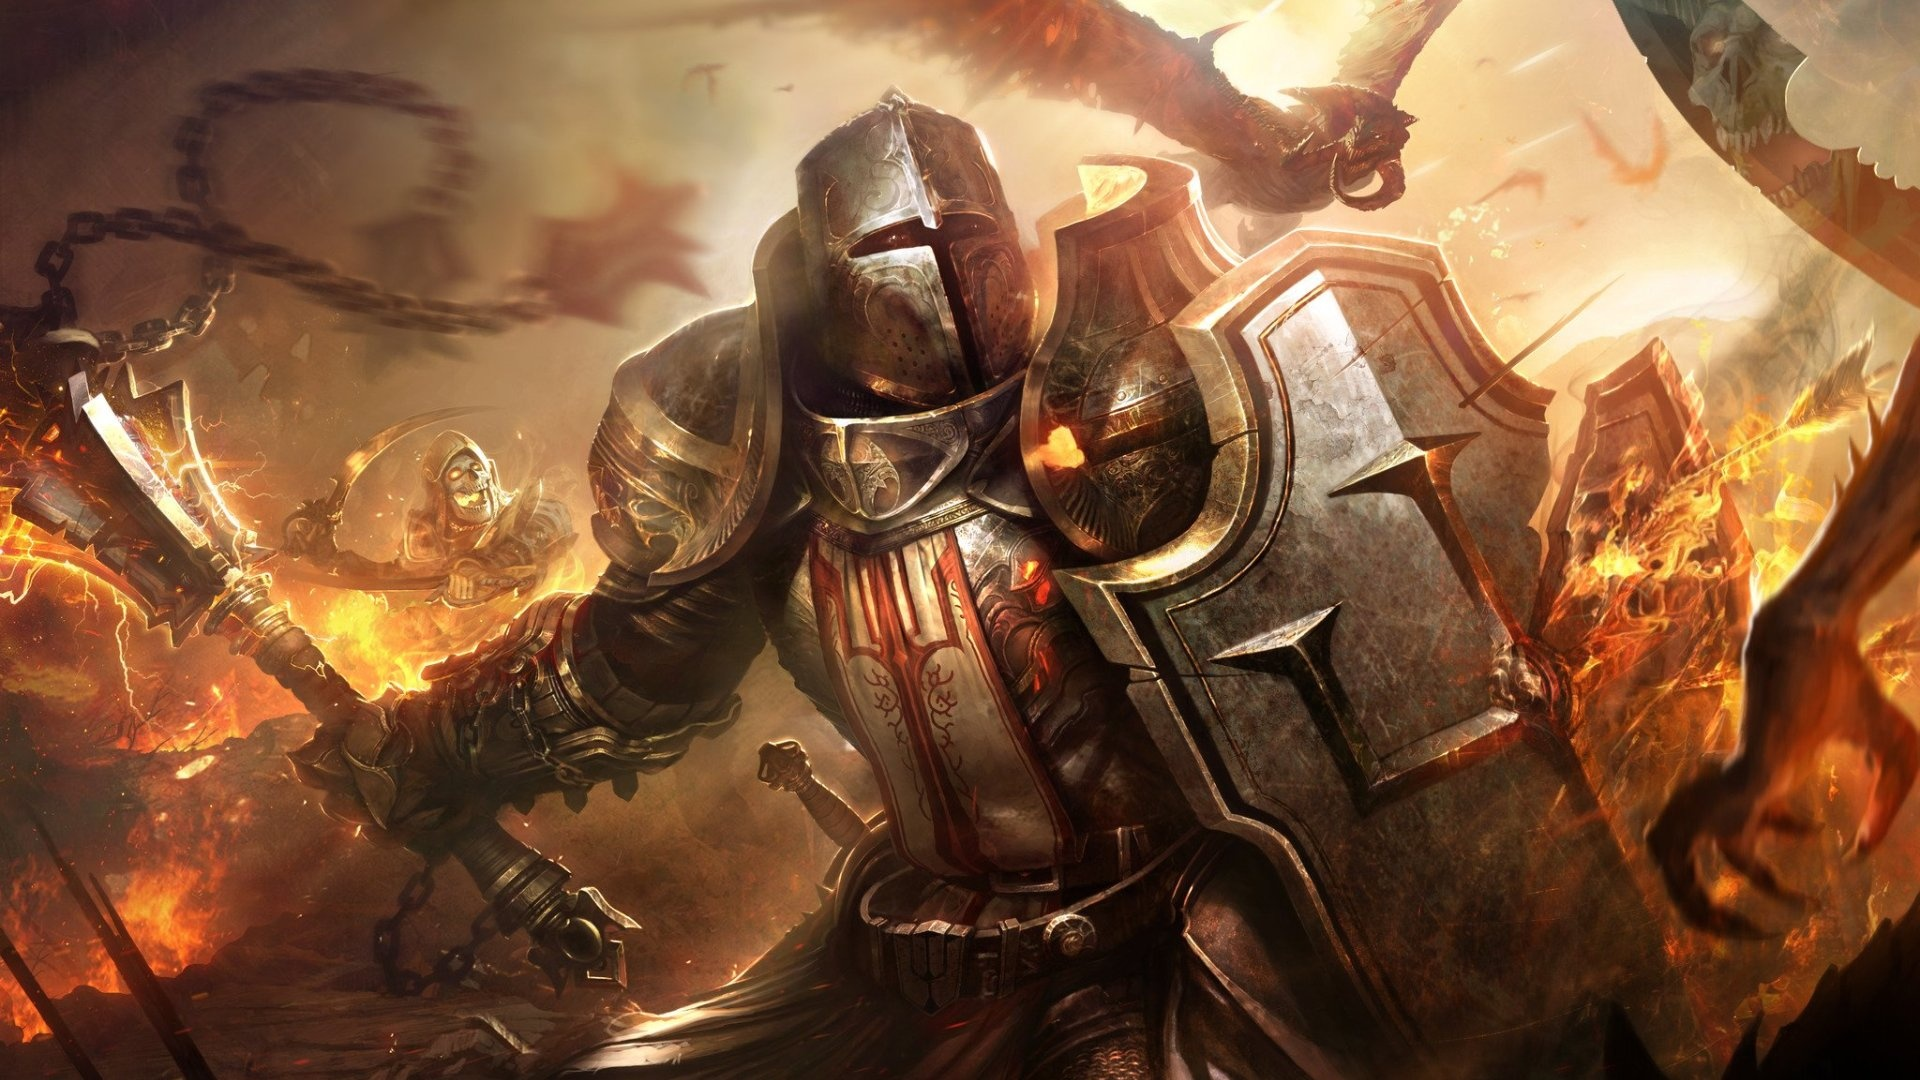 Diablo 3 Crusader Wallpaper 1920x1080 Diablo III Reaper Of S...